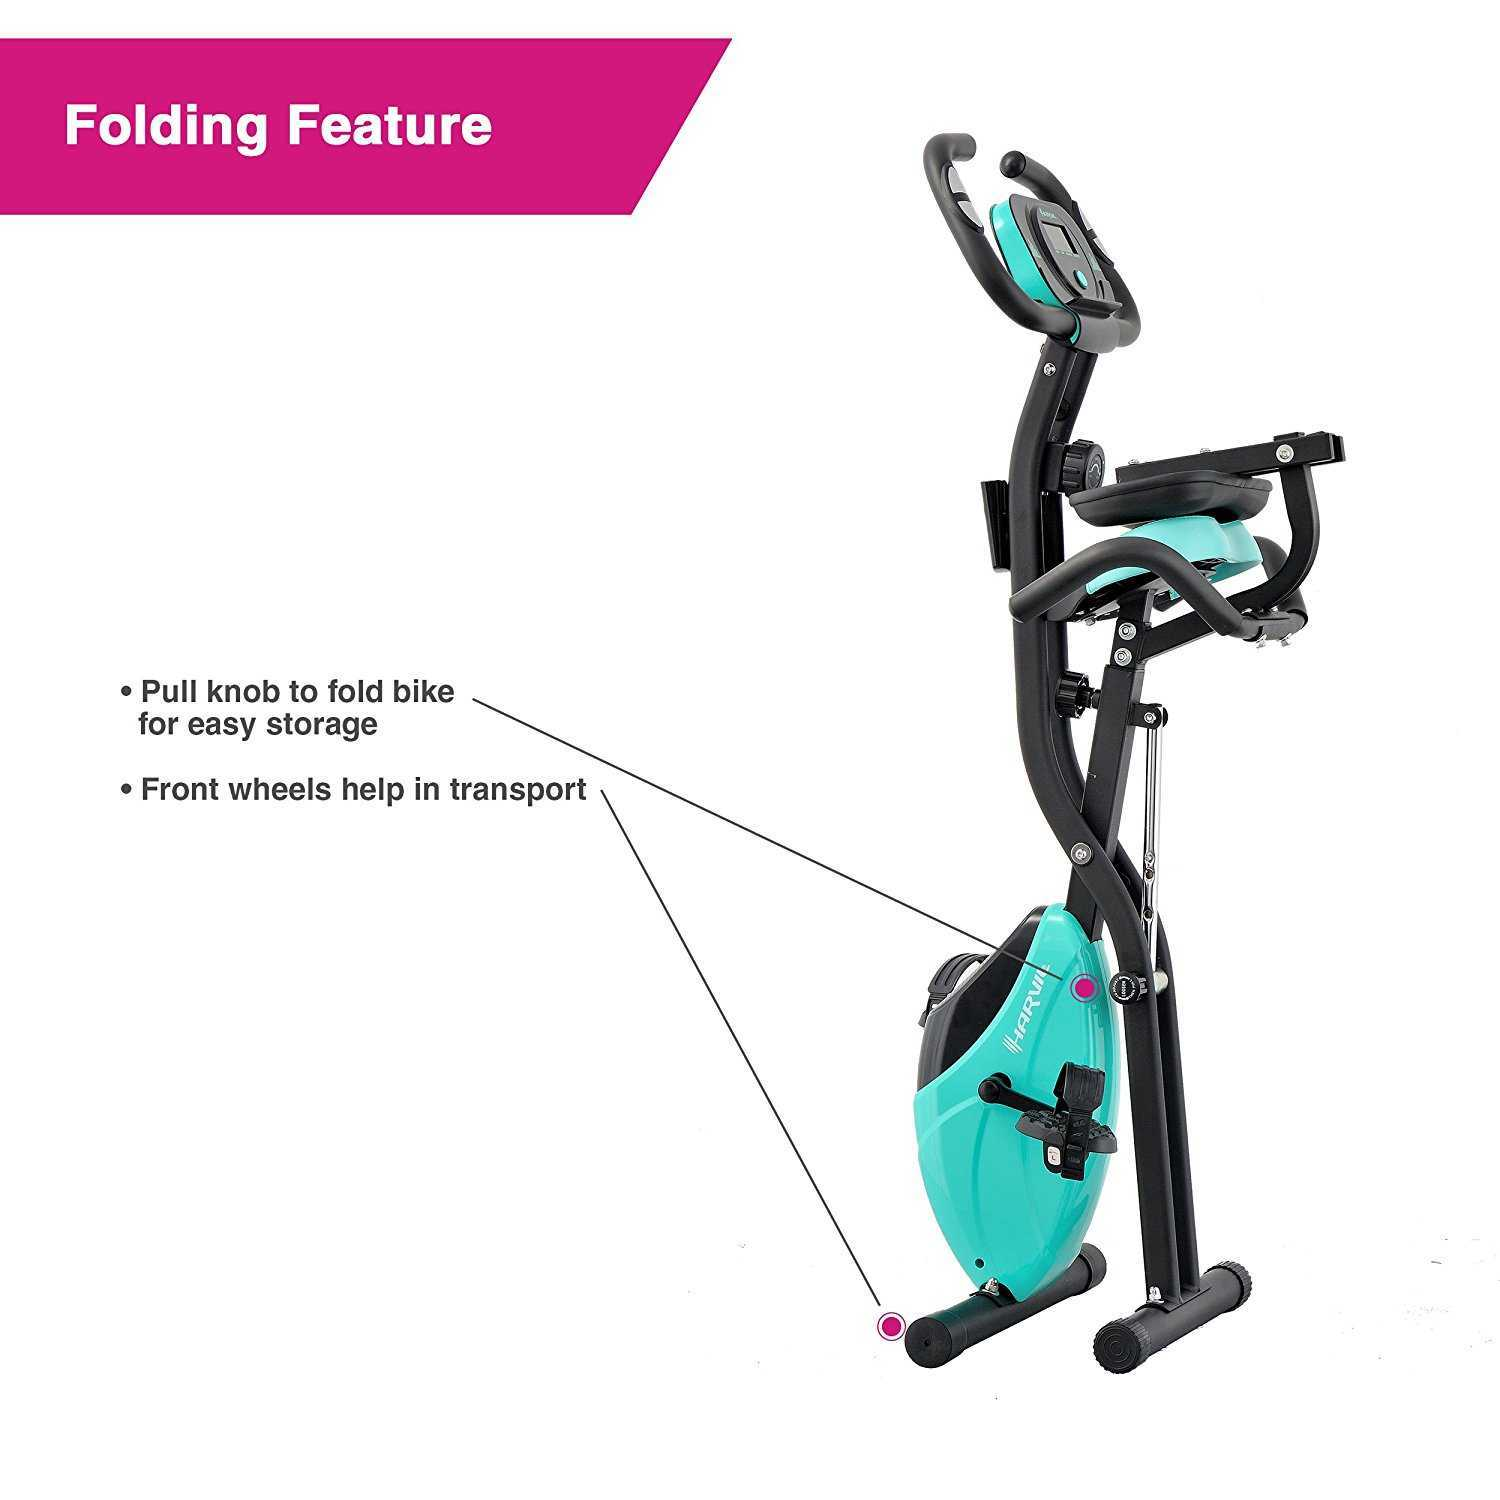 Havril Foldable Exercise Bike Folded View